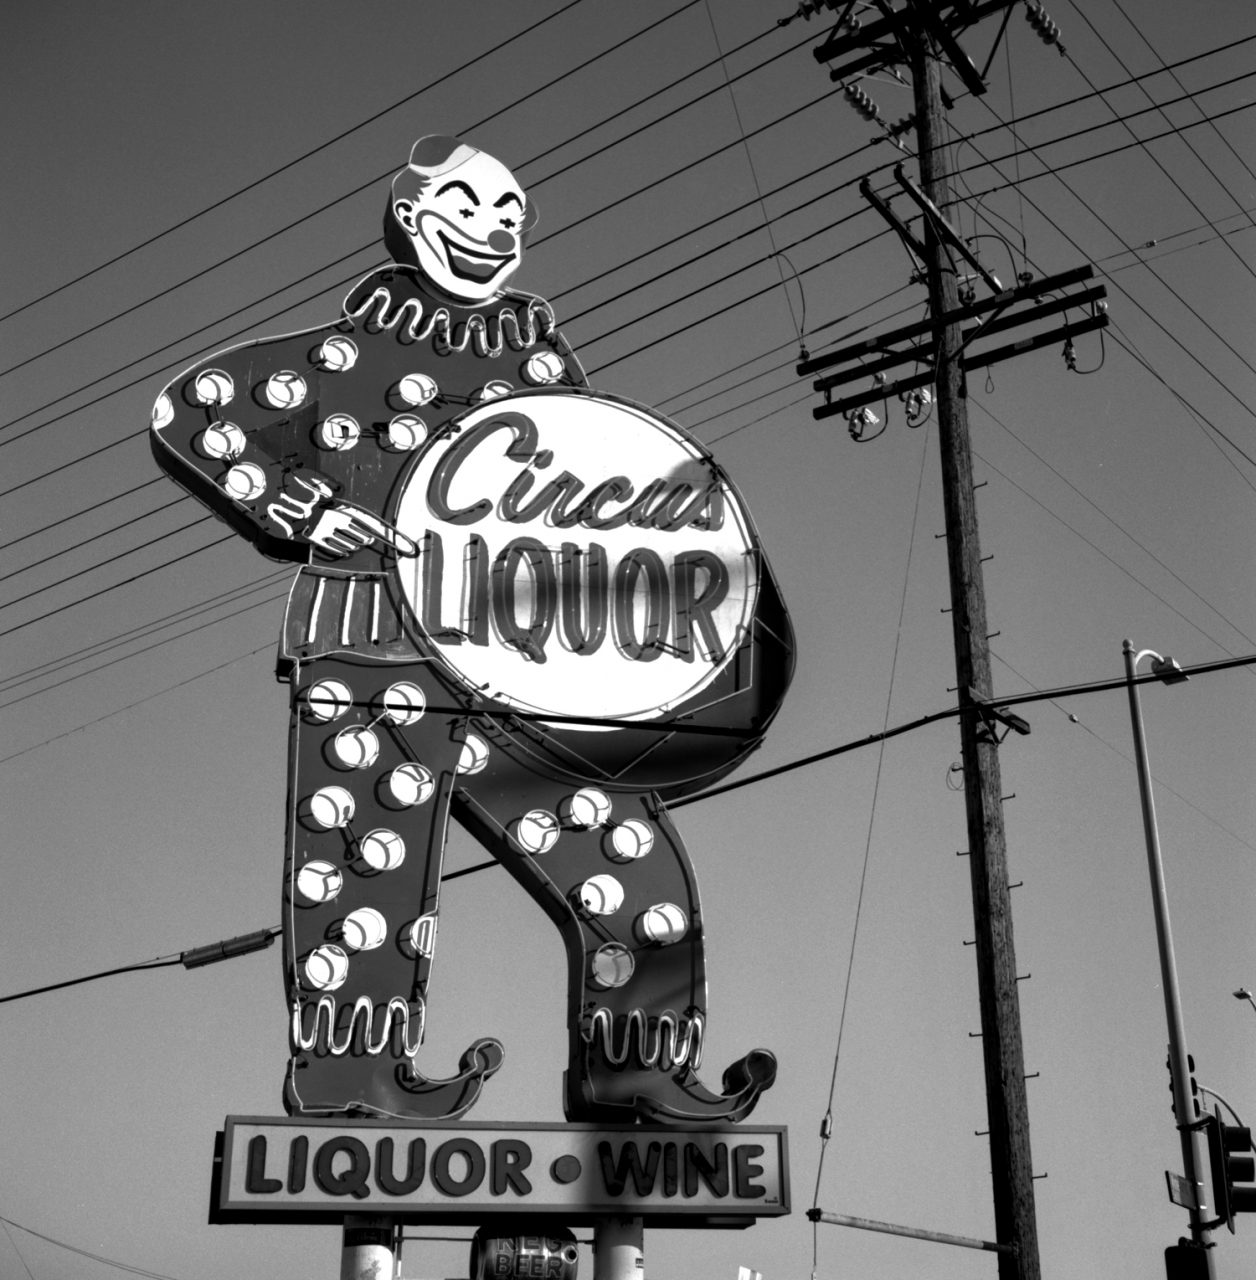 Circus Liquor Clown 1